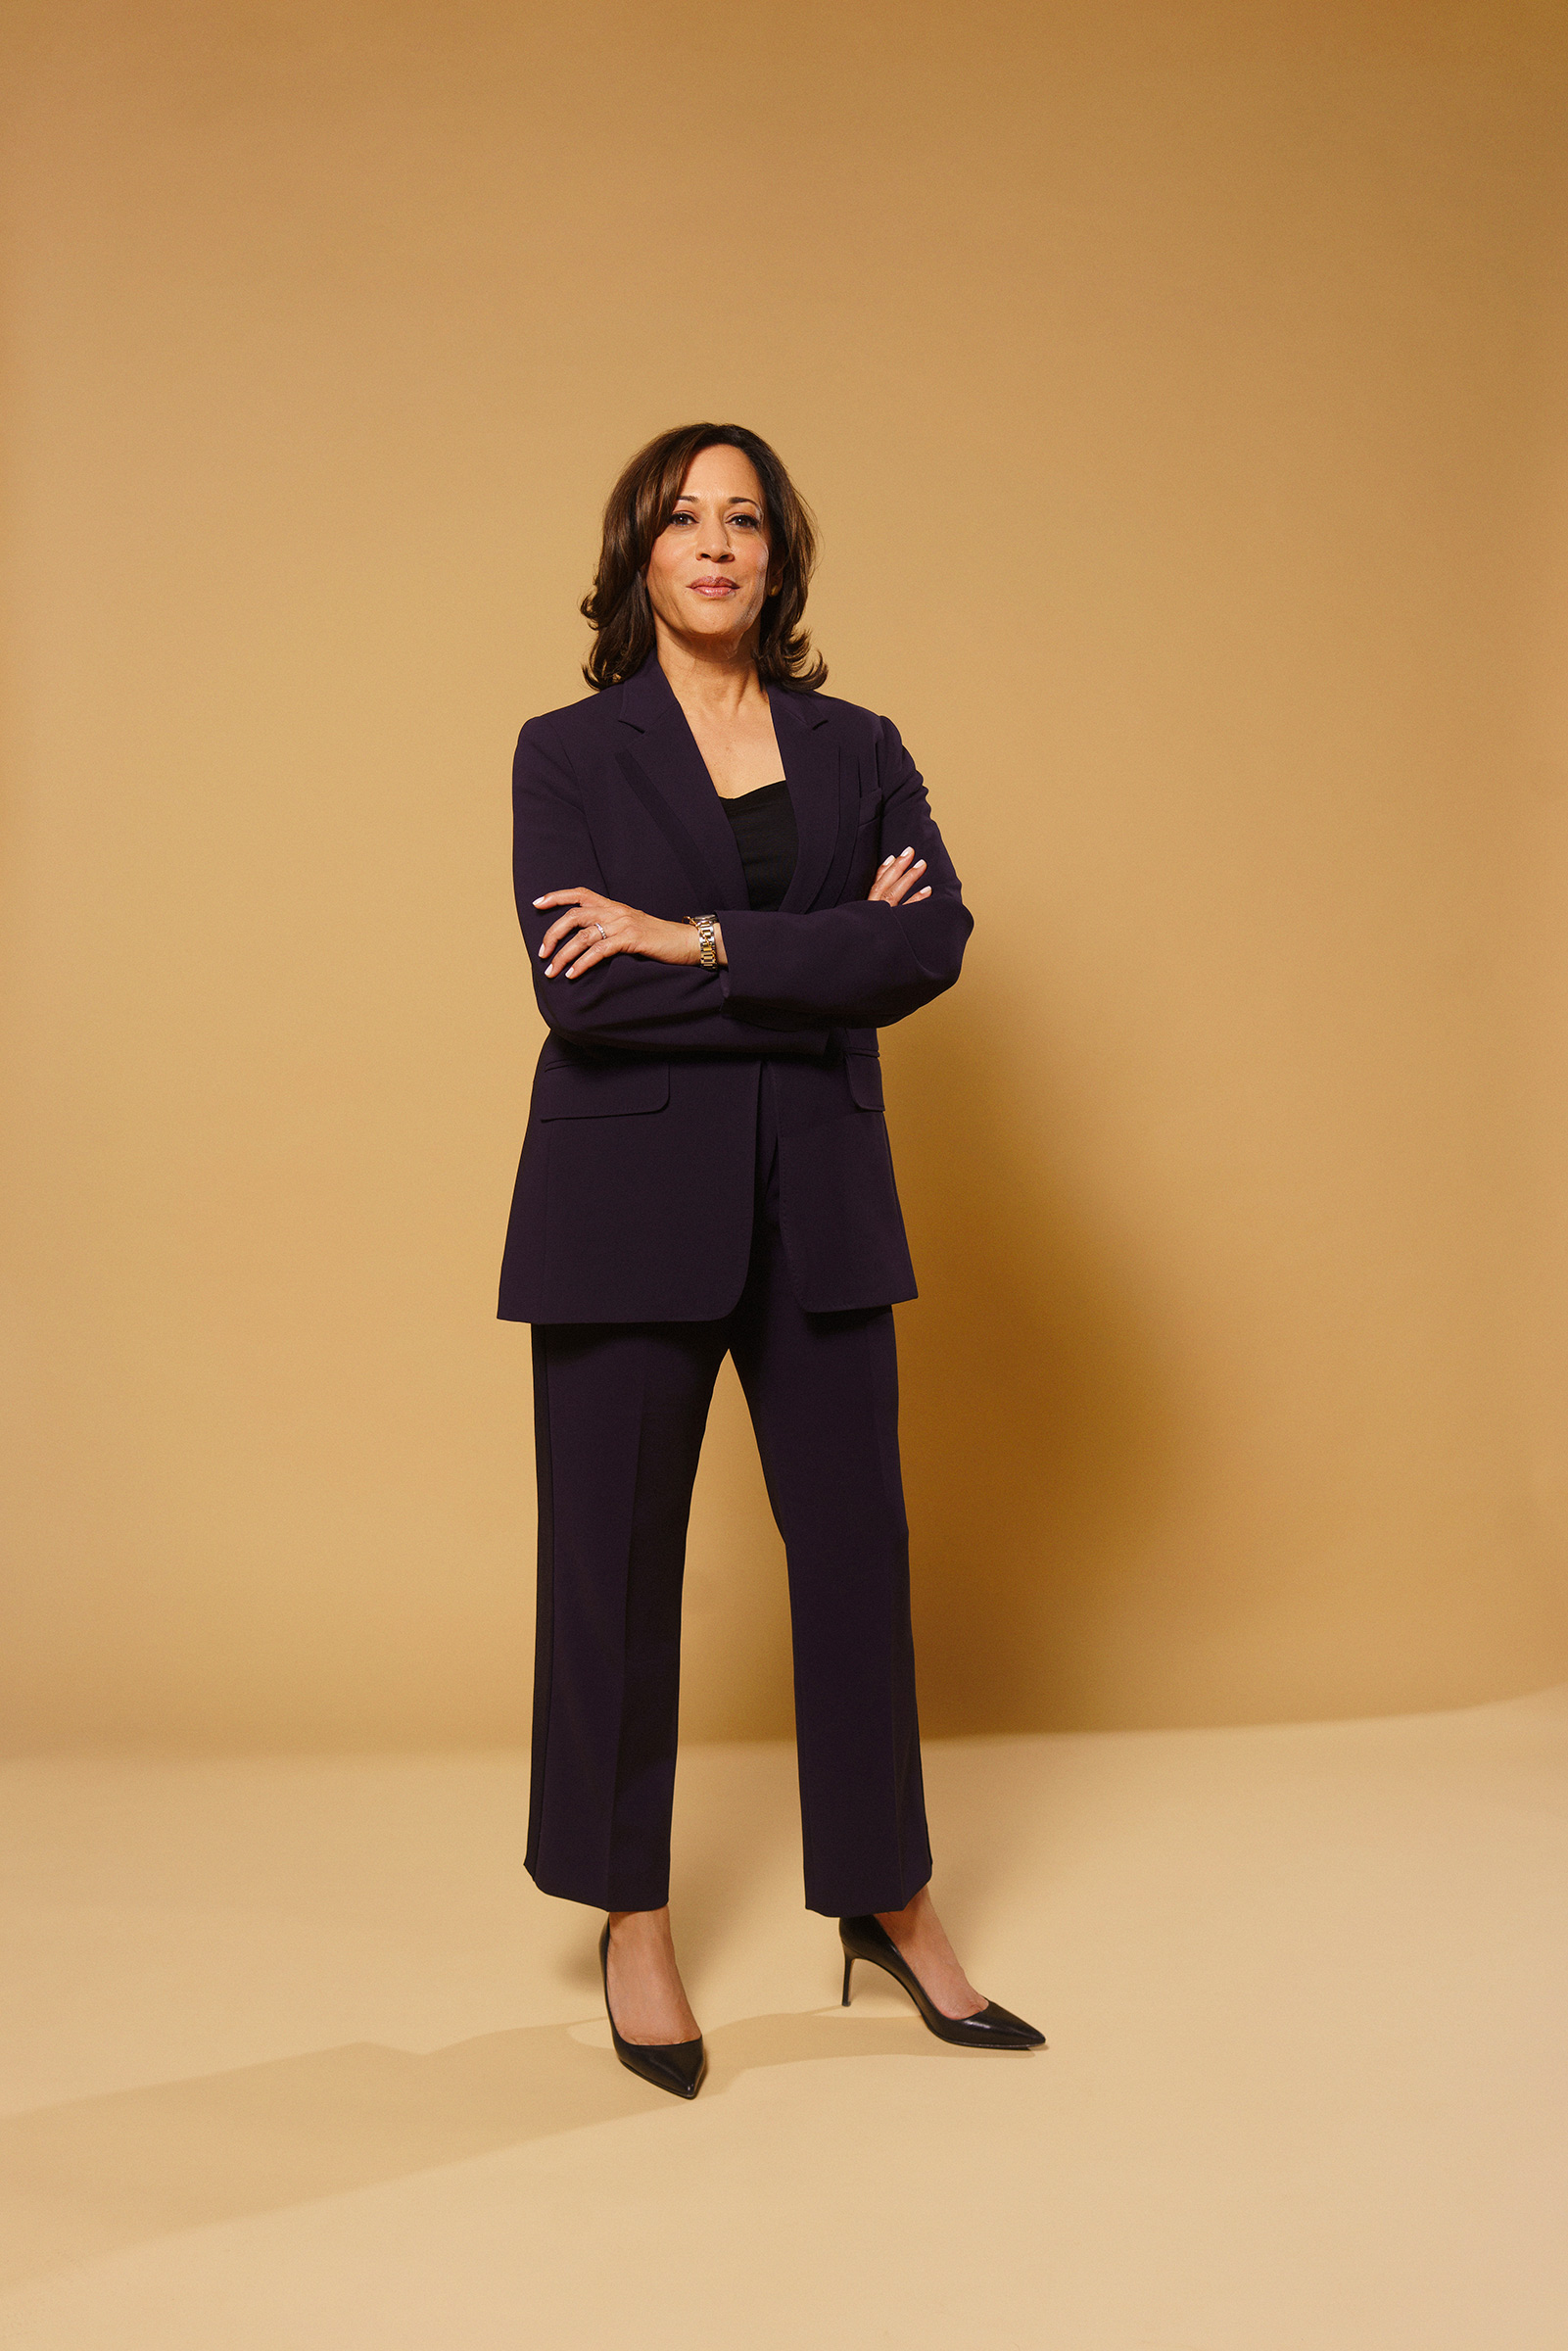 Kamala Harris, photographed in Los Angeles in October 2019.  TIME 100 Most Influential People,  Oct. 5 issue.